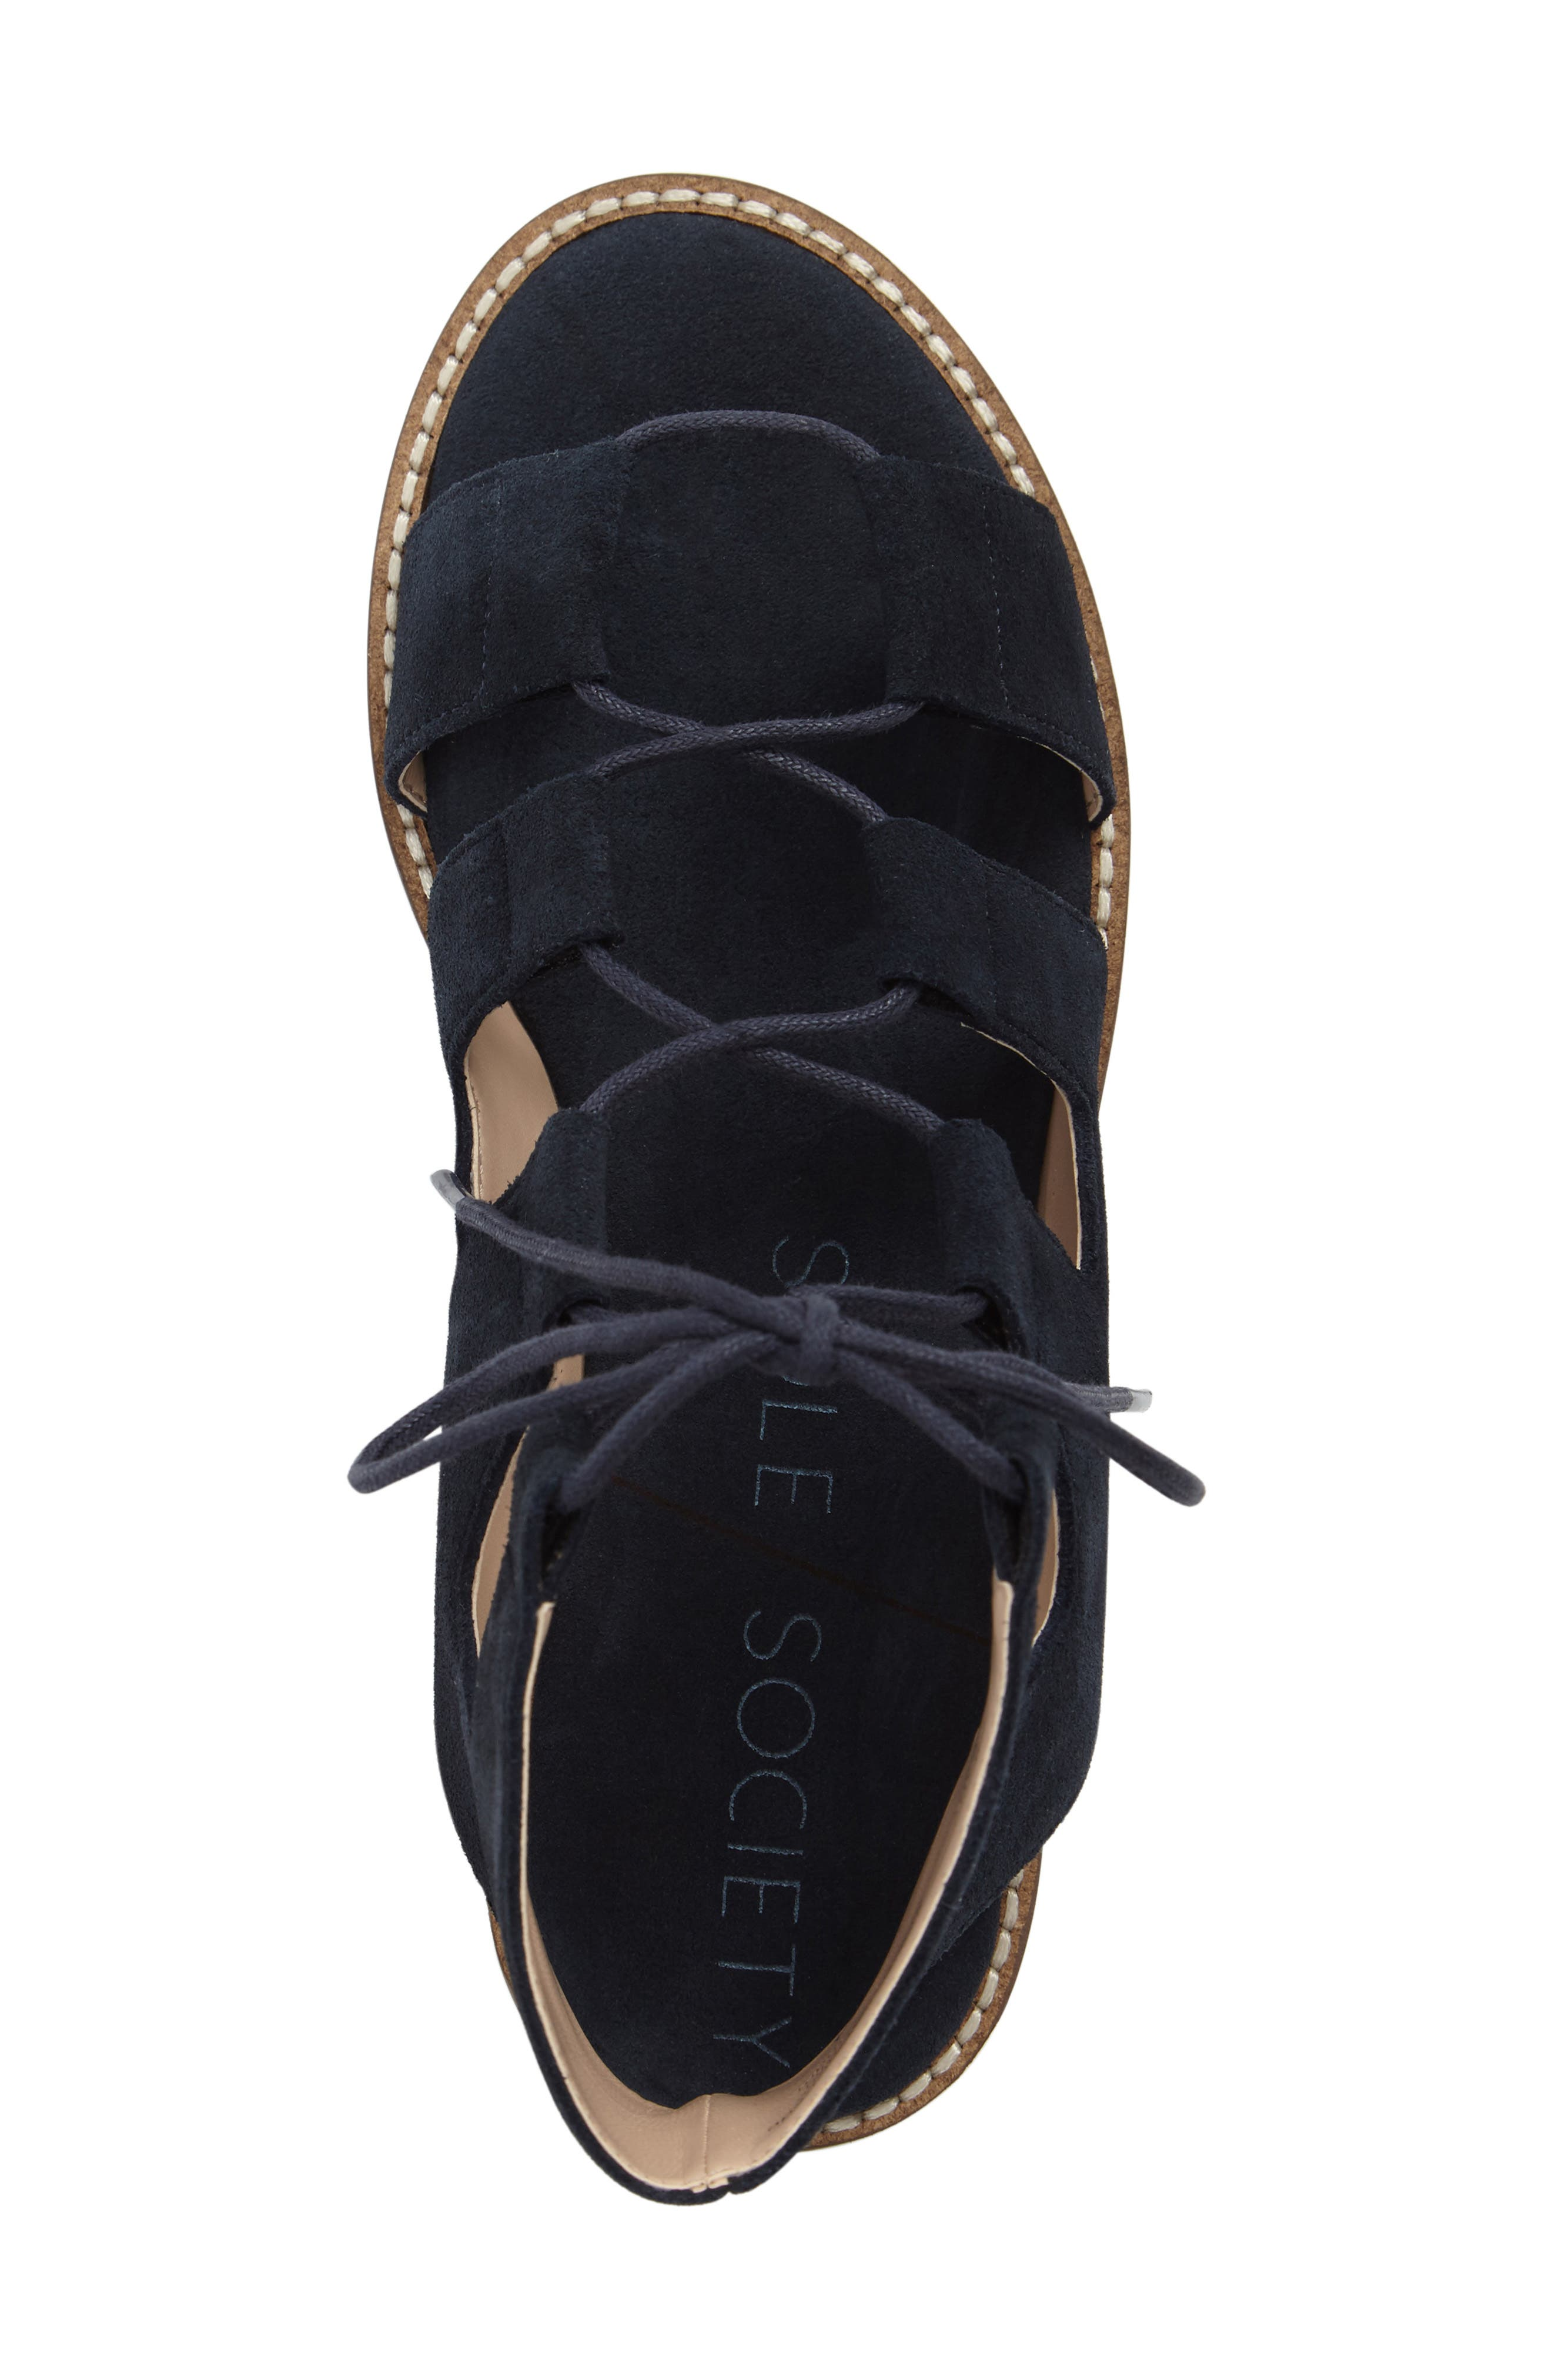 'Cady' Lace-Up Flat Sandal,                             Alternate thumbnail 5, color,                             Ink Navy Suede